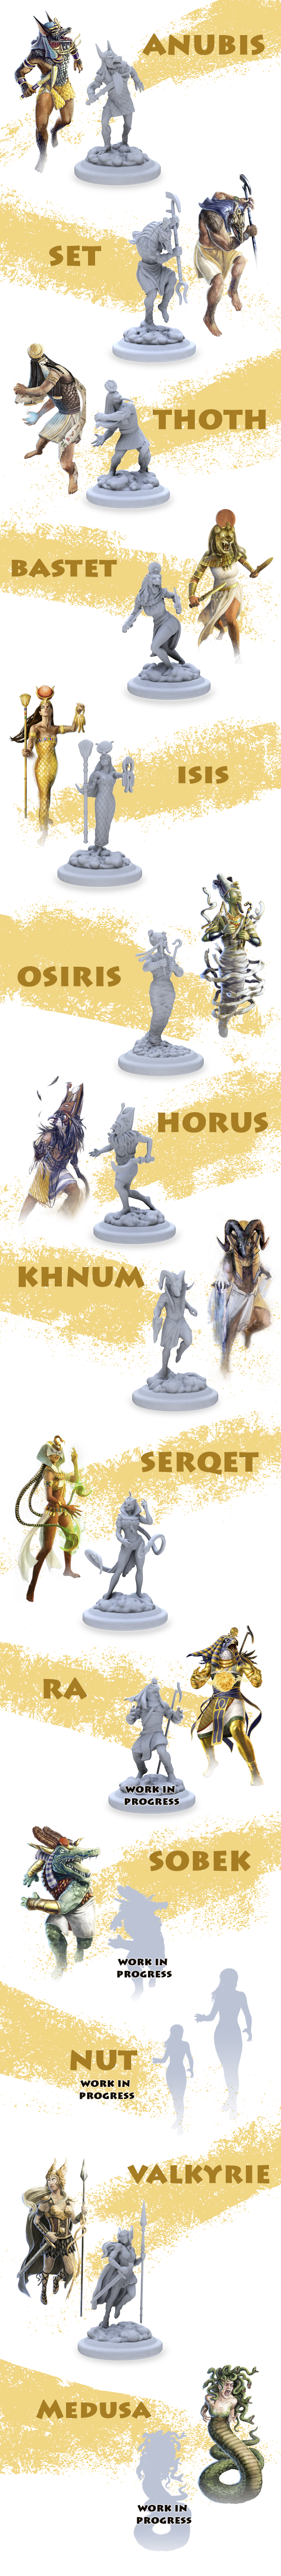 Note: These are images of the original sculpts, not physical, final products.